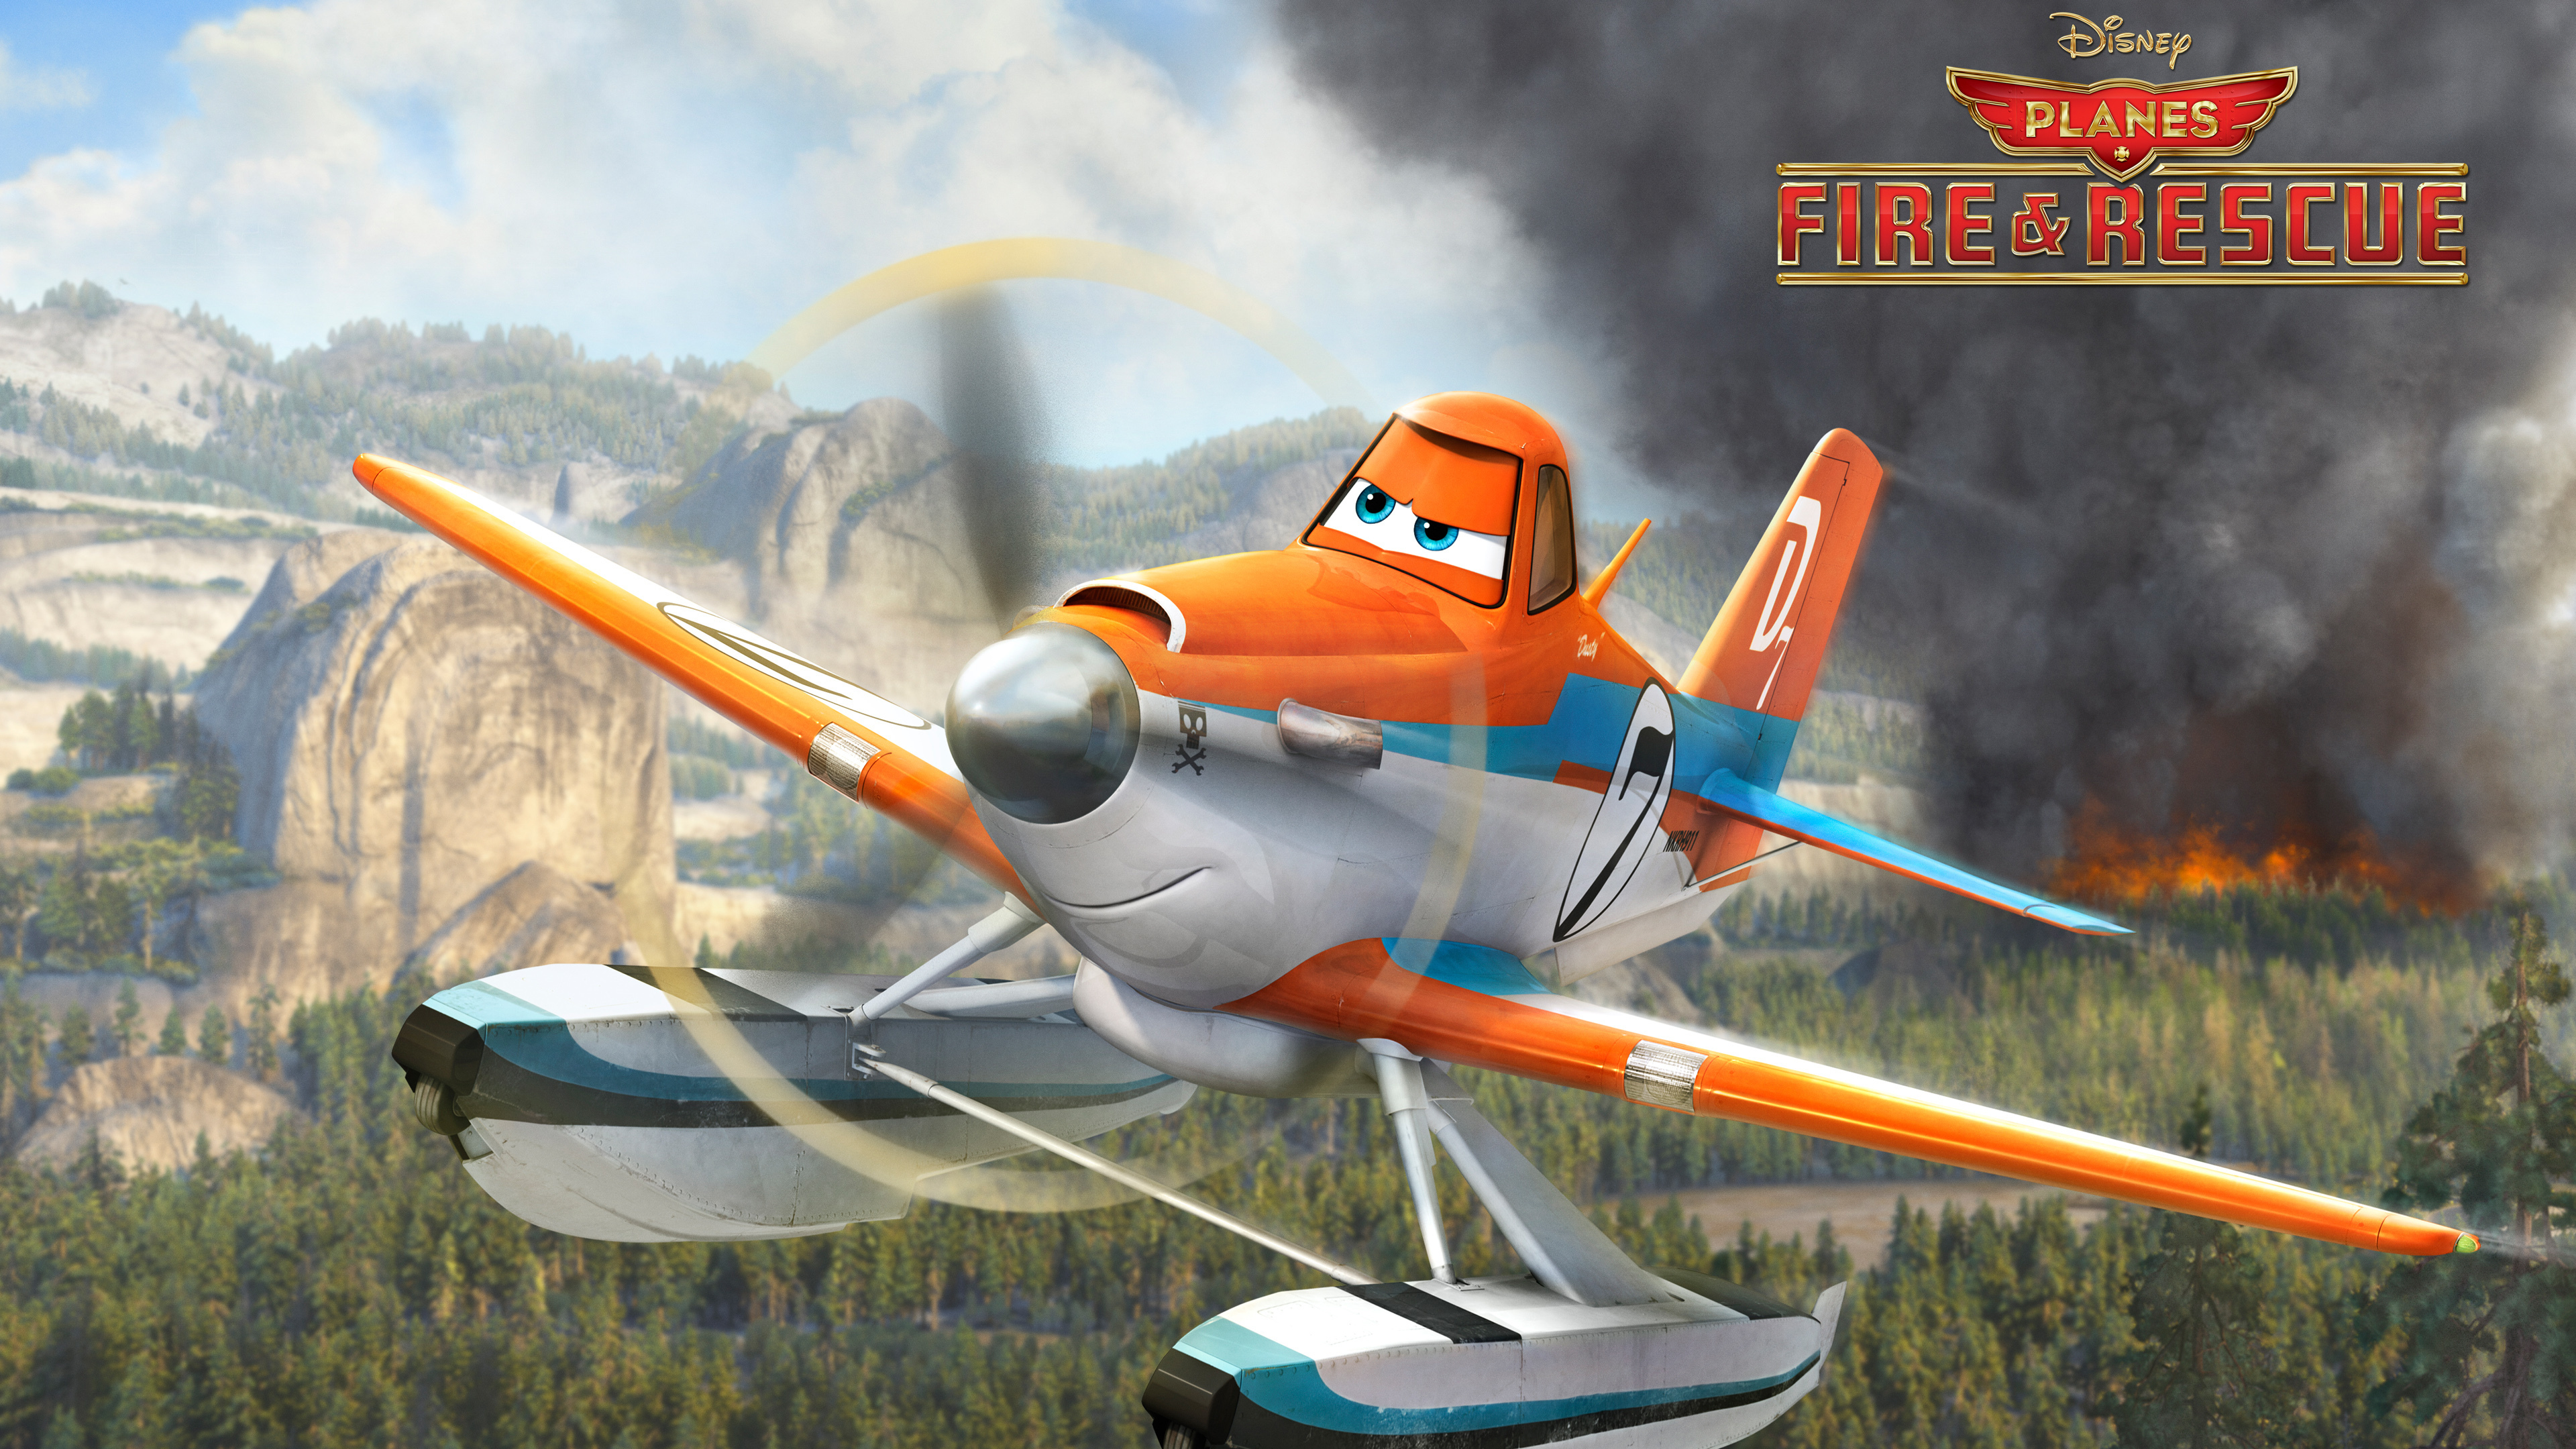 Planes: Fire & Rescue 4k Ultra HD Wallpaper and Background ...